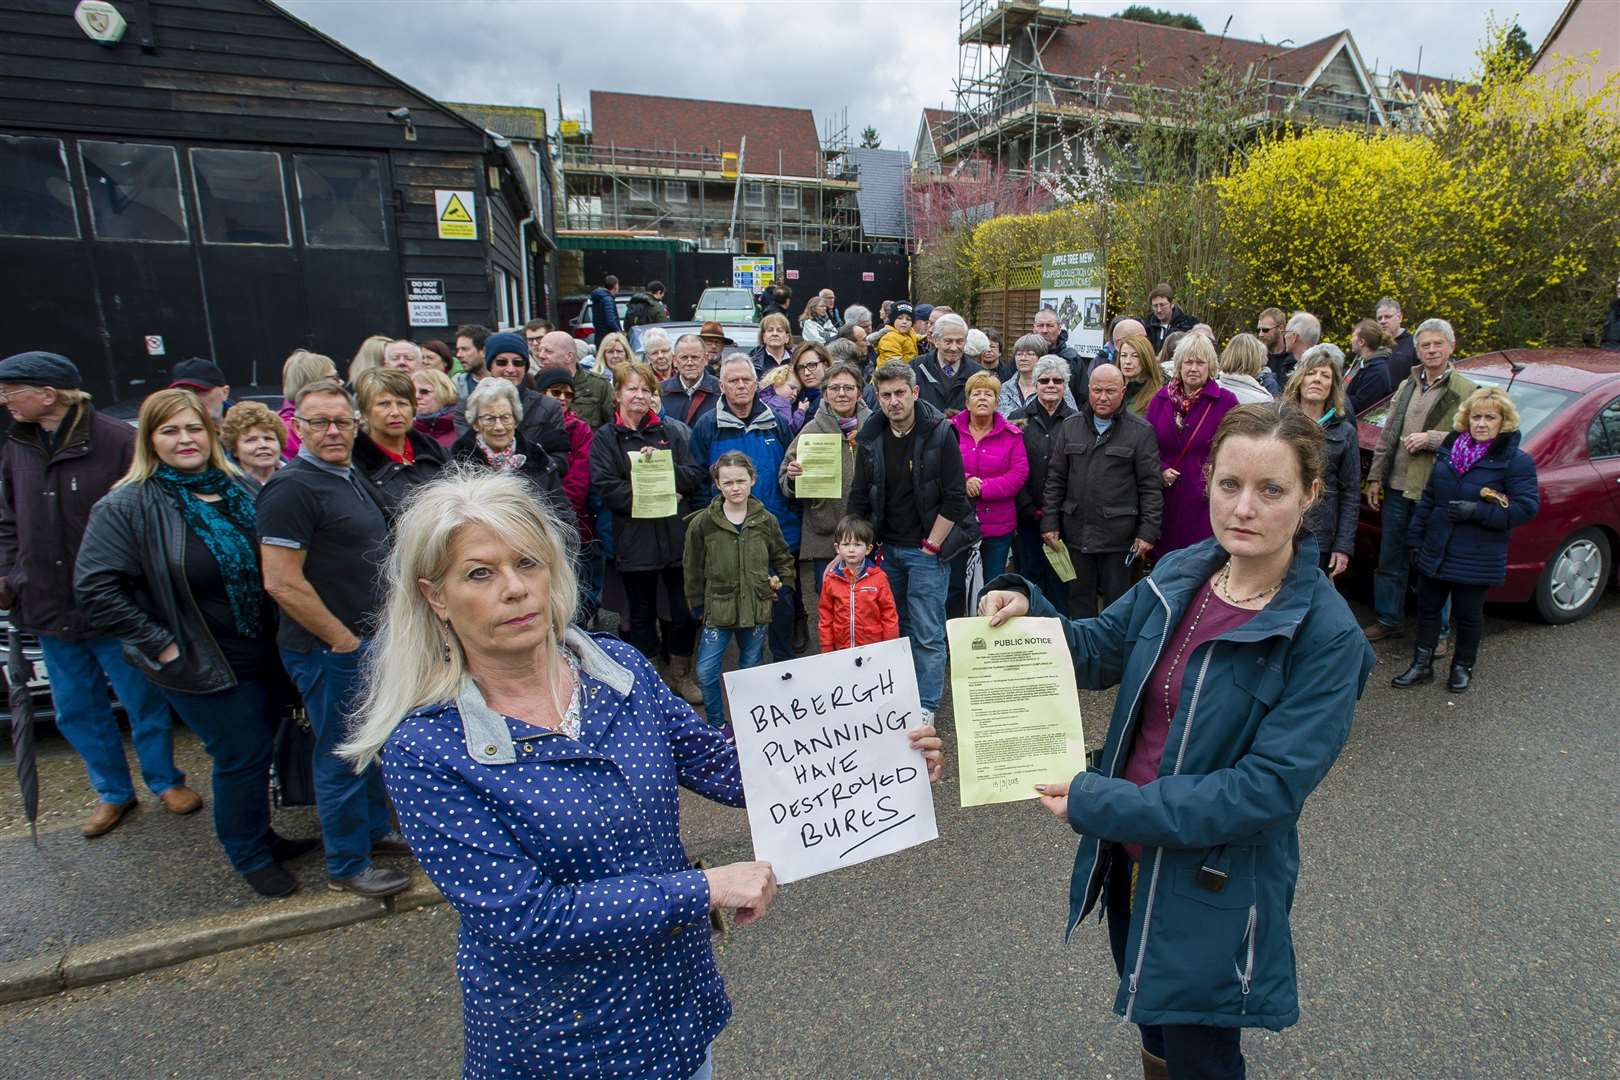 Bures, Suffolk. Residents protesting about a housing development on Cuckoo Hill where they live which are subject to a further planning application. Pictured are Carol Walters and Clare Frewin. ..Picture: Mark Bullimore Photography. (15860629)